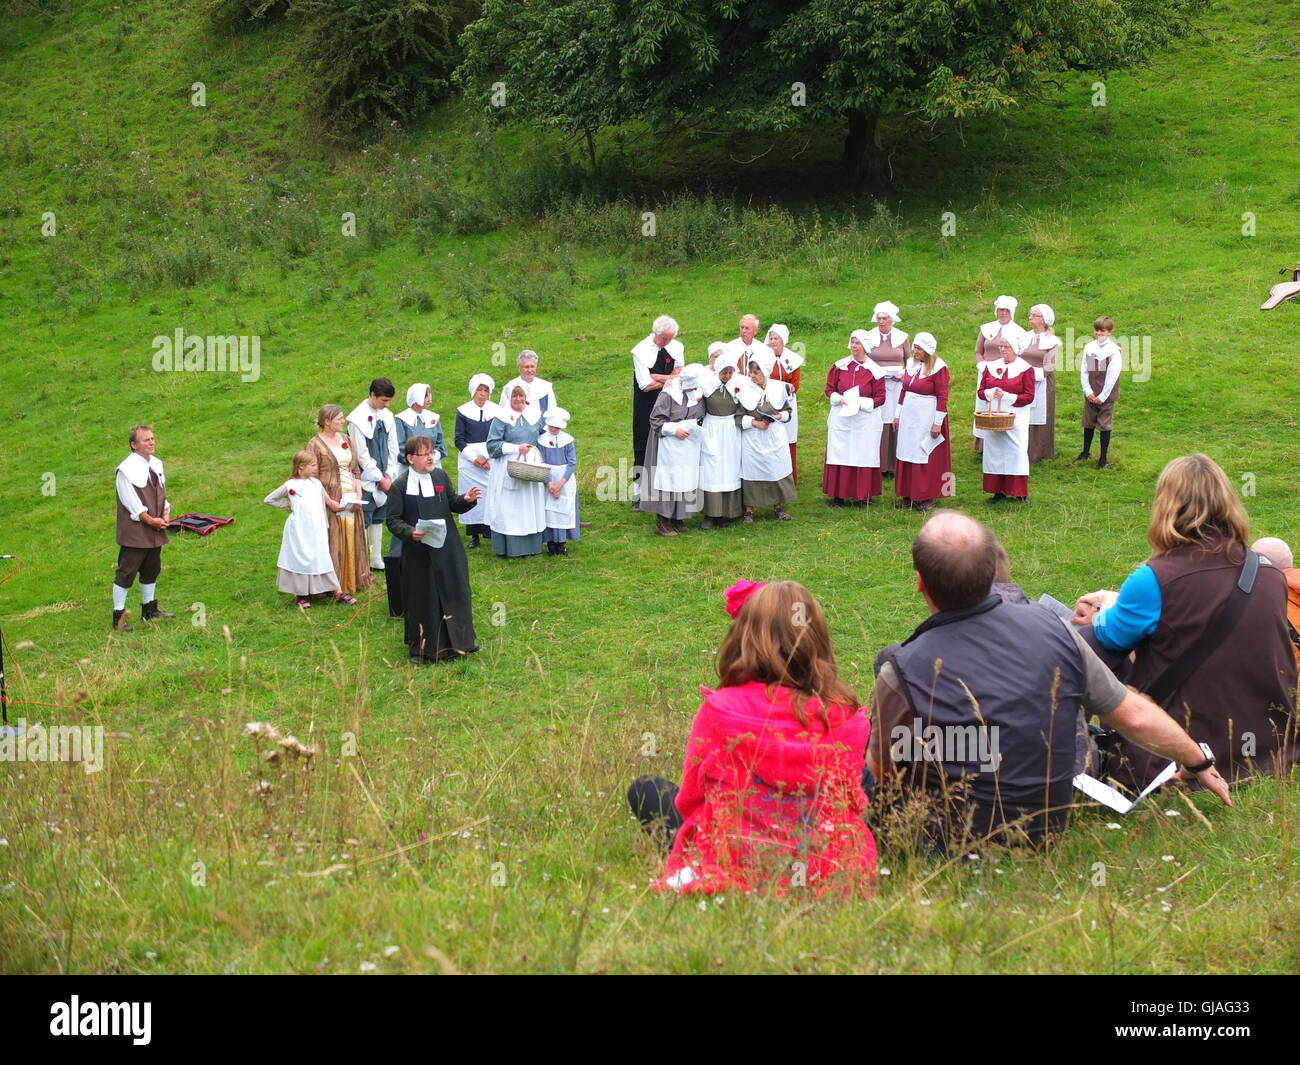 Villagers in costume conduct the Eyam Plague Commemoration Service at Cucklet Delf as attendees watch from the hillside - Stock Image